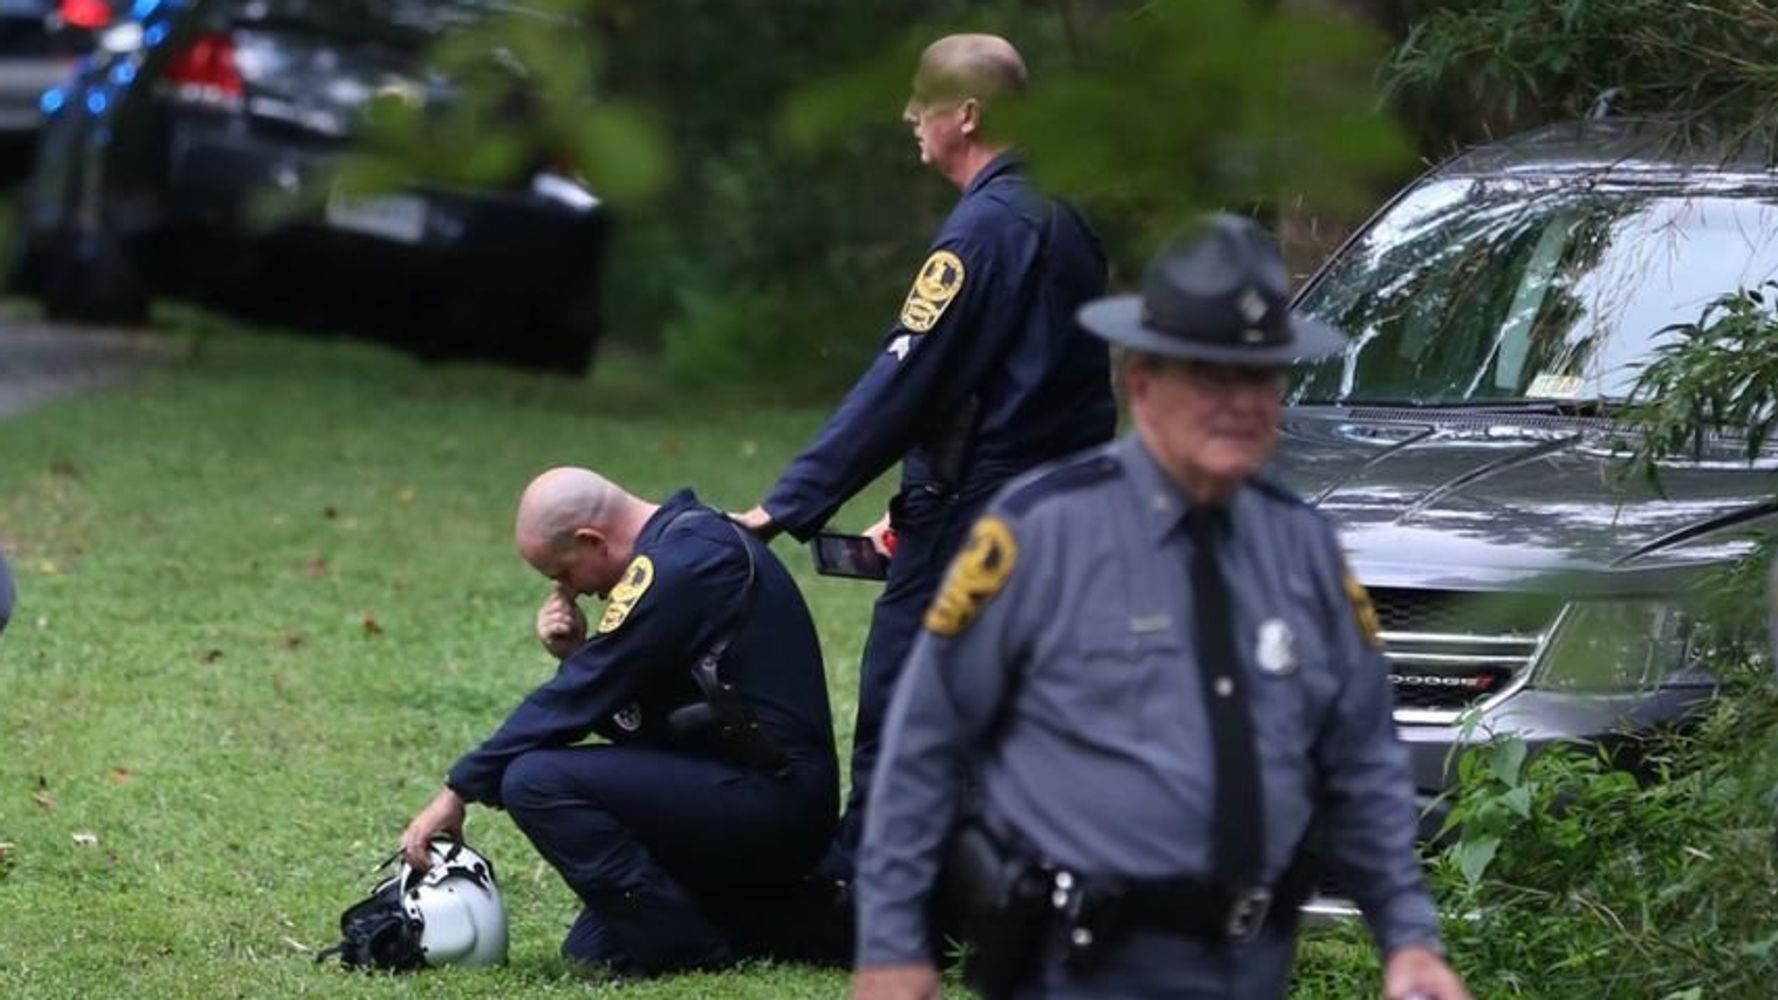 2 Killed When Police Helicopter Crashes While Responding To